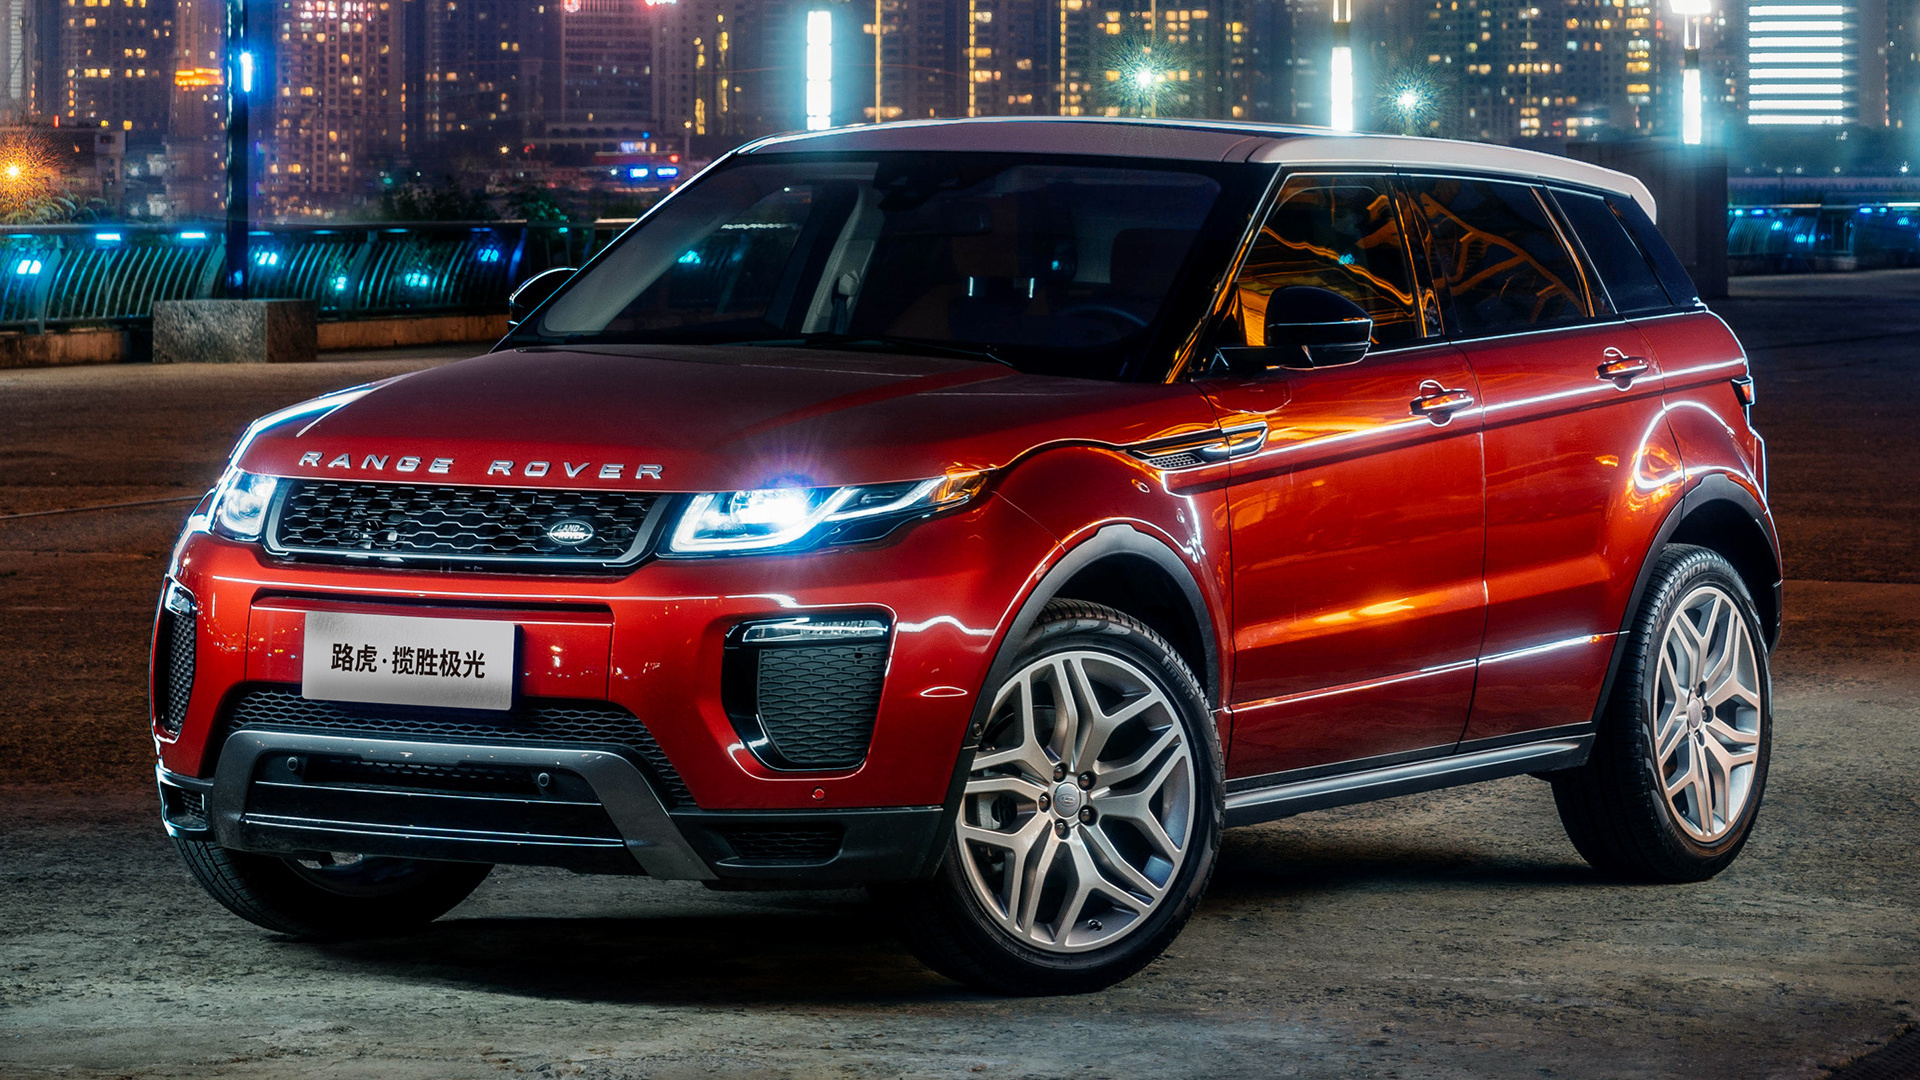 range rover evoque hse dynamic 2016 cn wallpapers and hd. Black Bedroom Furniture Sets. Home Design Ideas